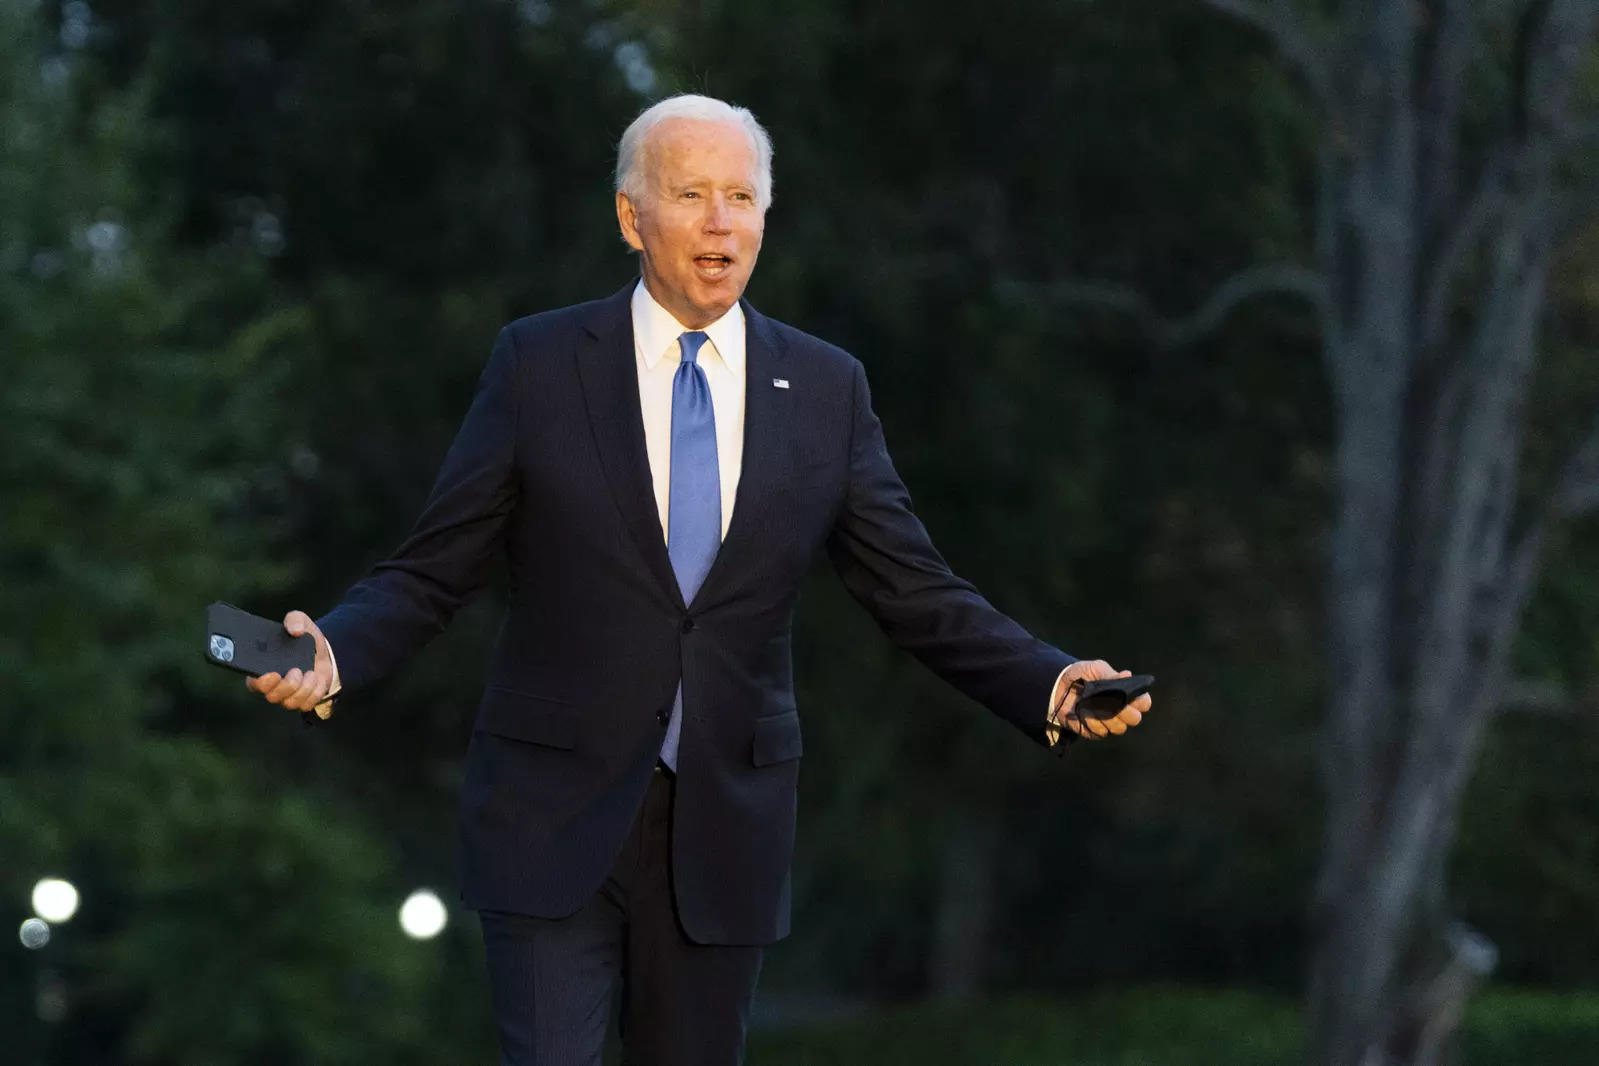 Biden advisor says carbon fee on the table for climate policy